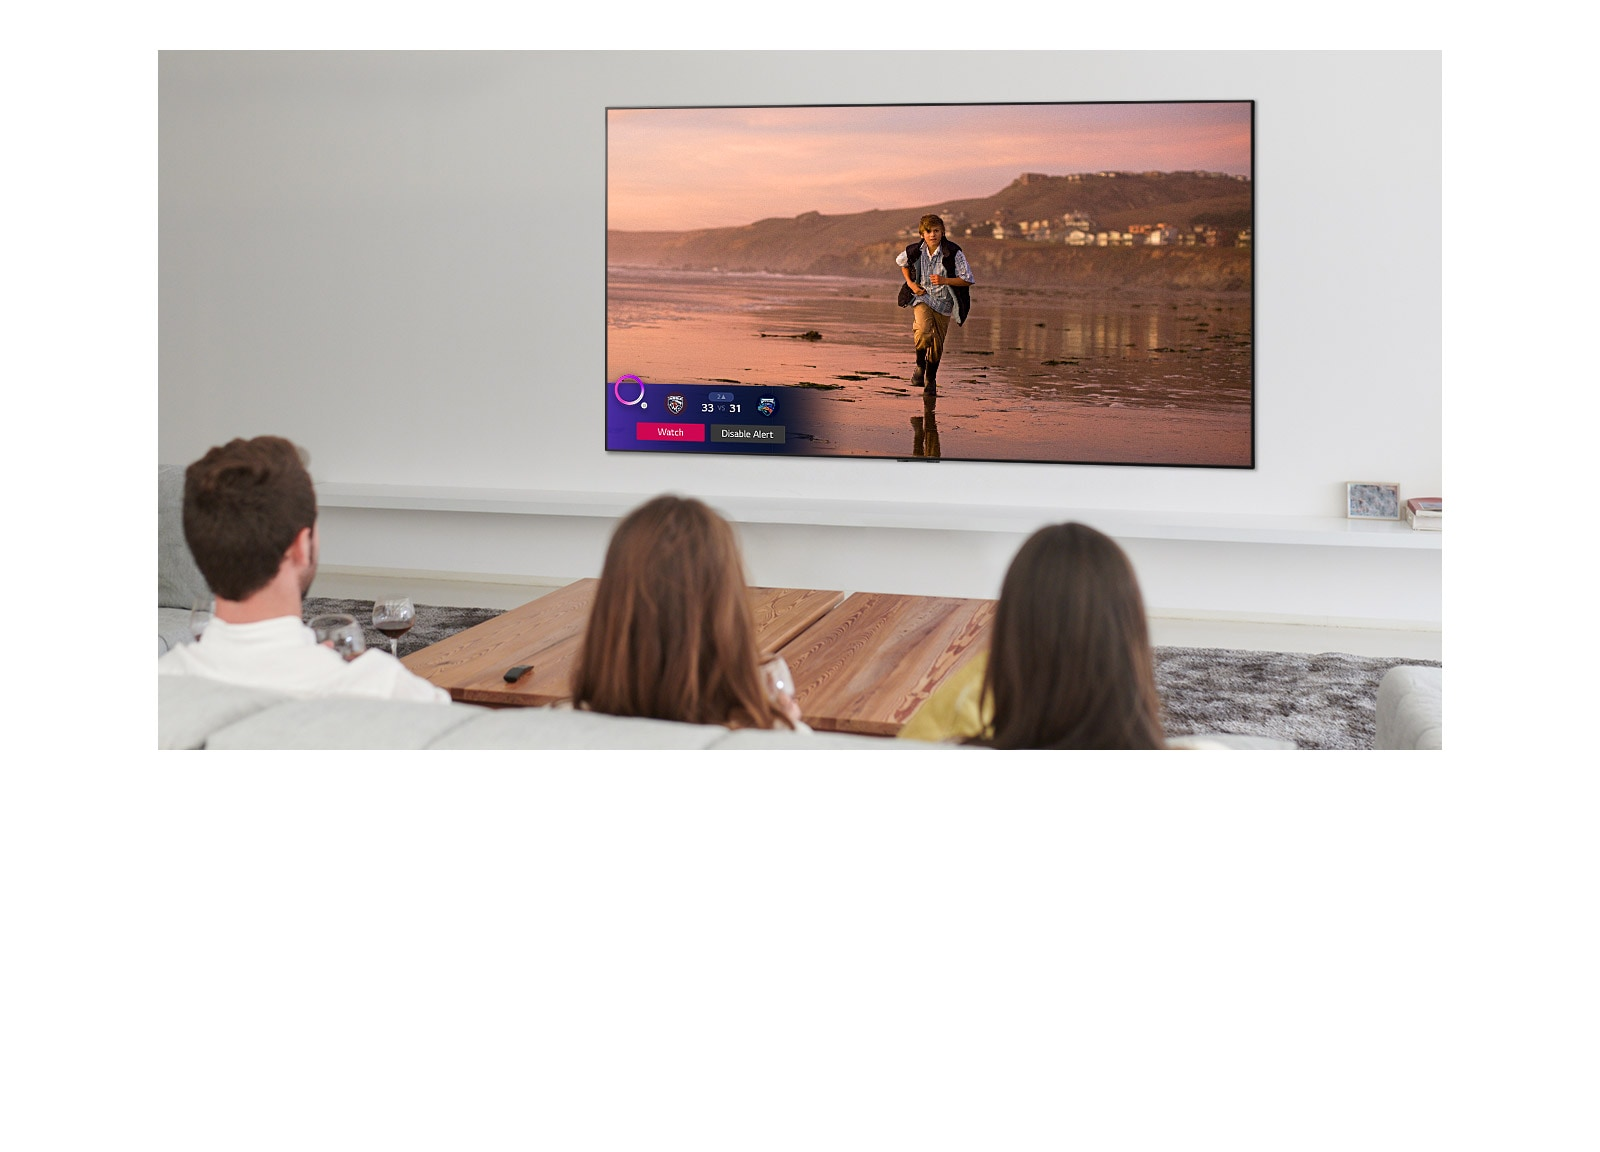 Three people watching TV screen showing a scene from a fantasy movie with a Sports Alert